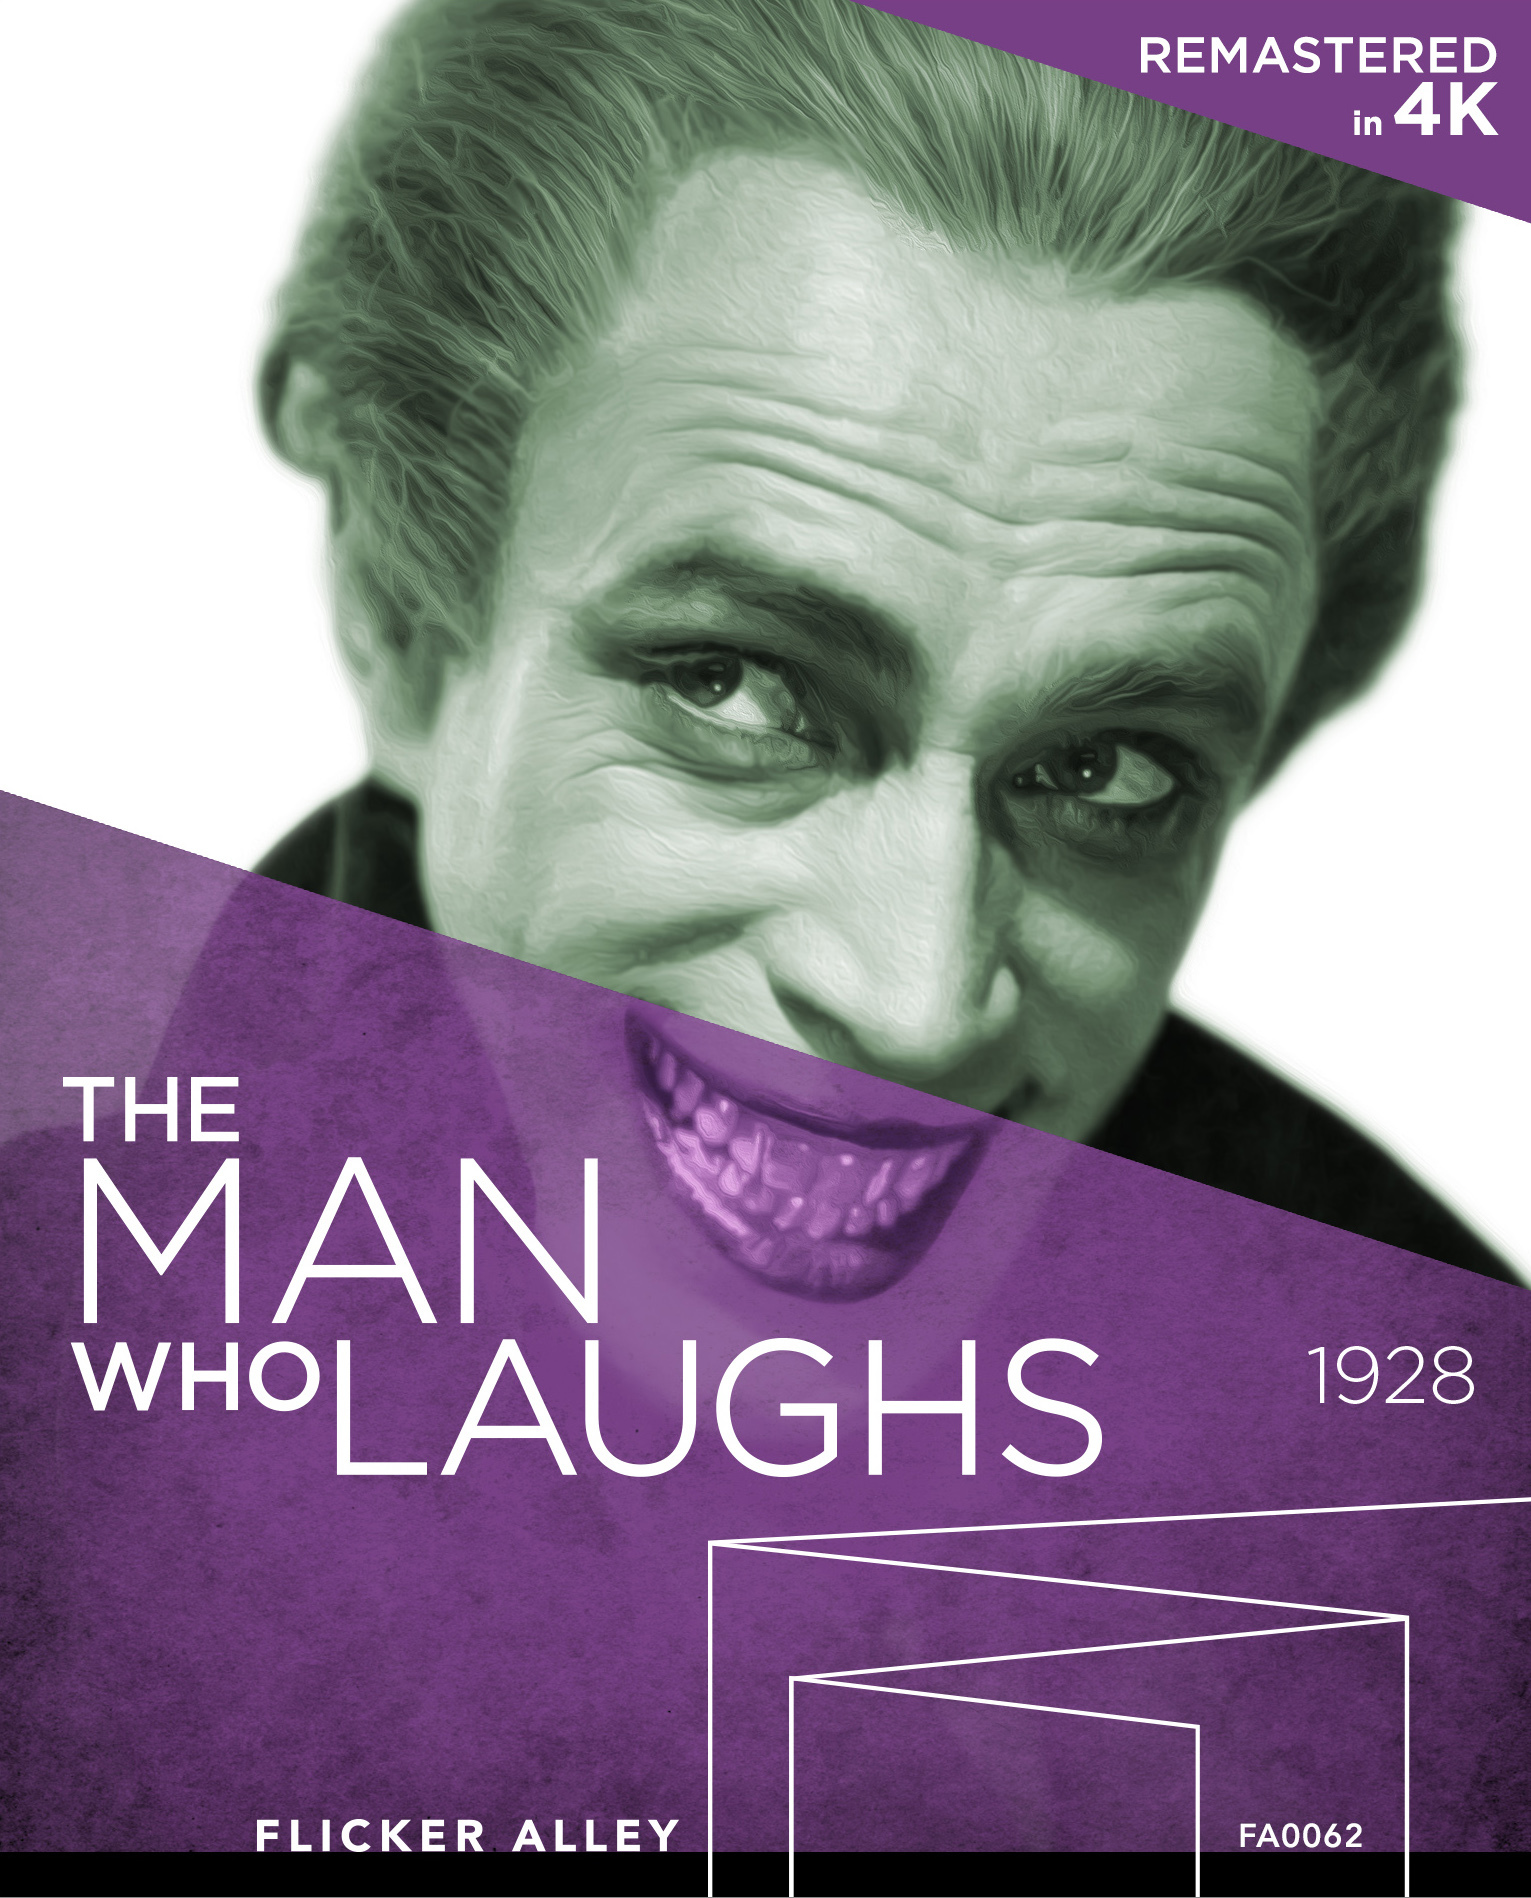 THE MAN WHO LAUGHS cover.jpg